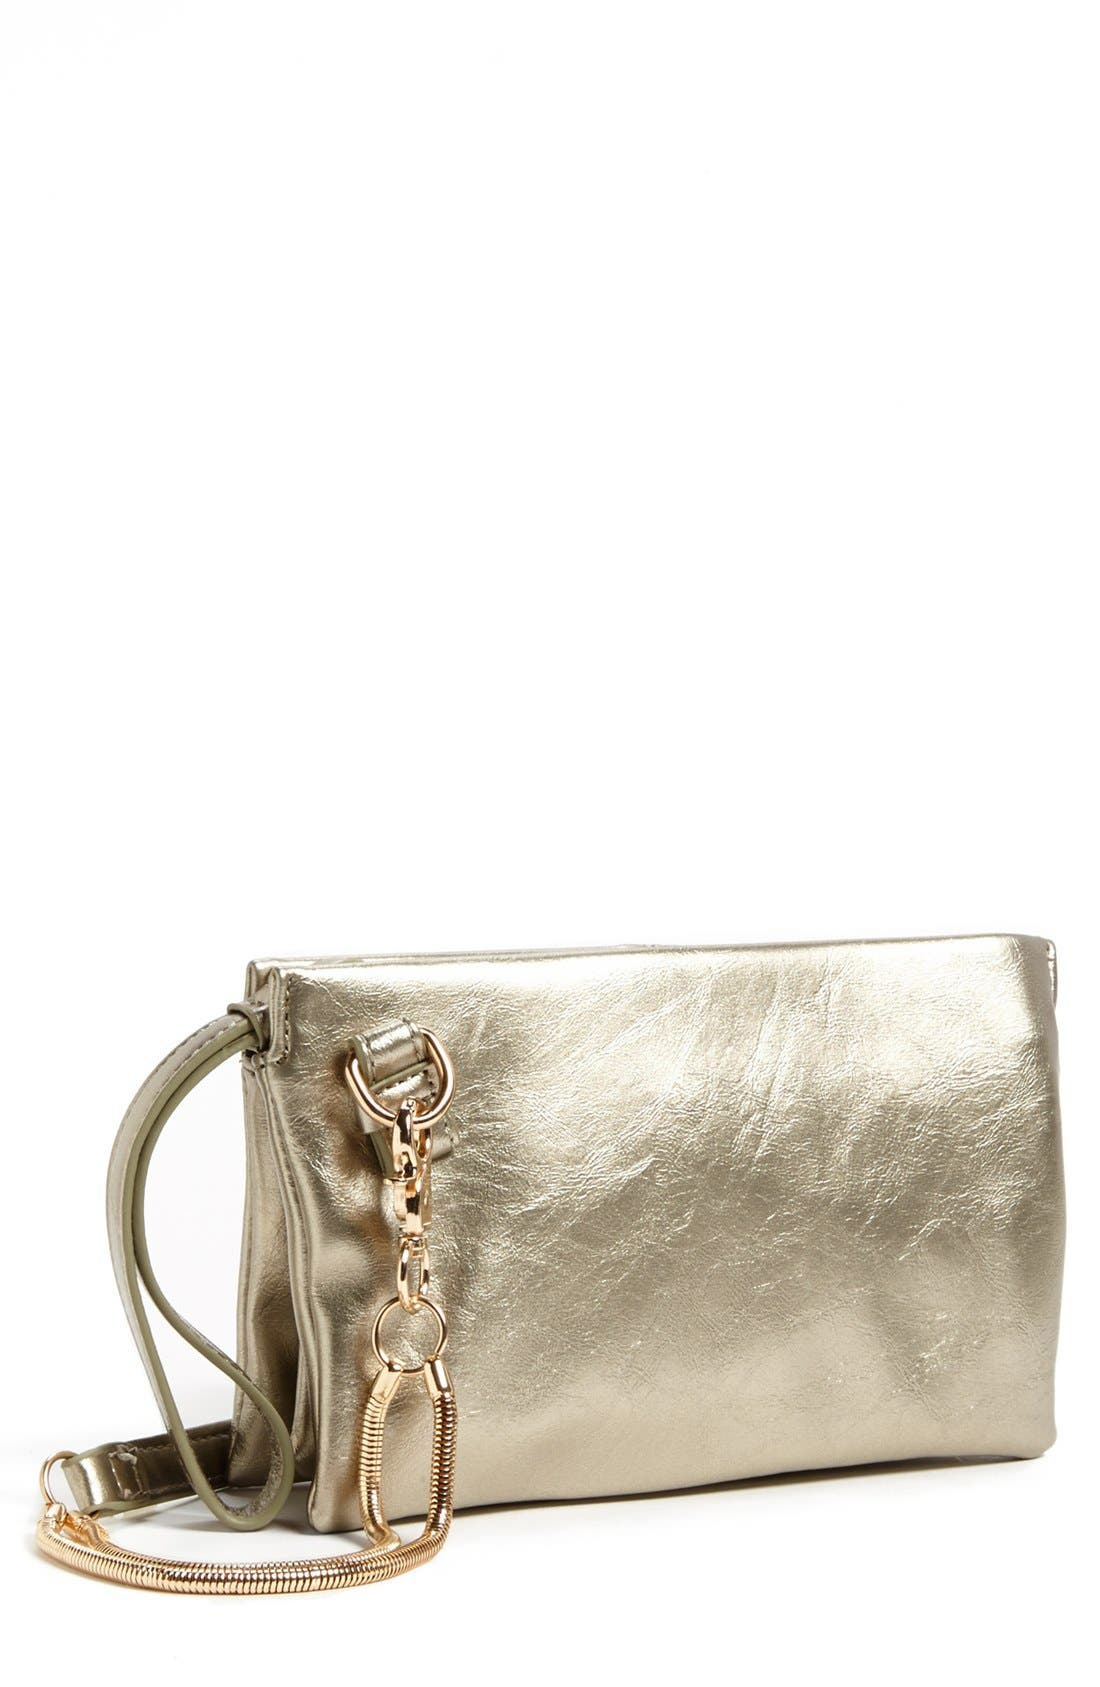 Alternate Image 1 Selected - POVERTY FLATS by rian Convertible Crossbody Bag